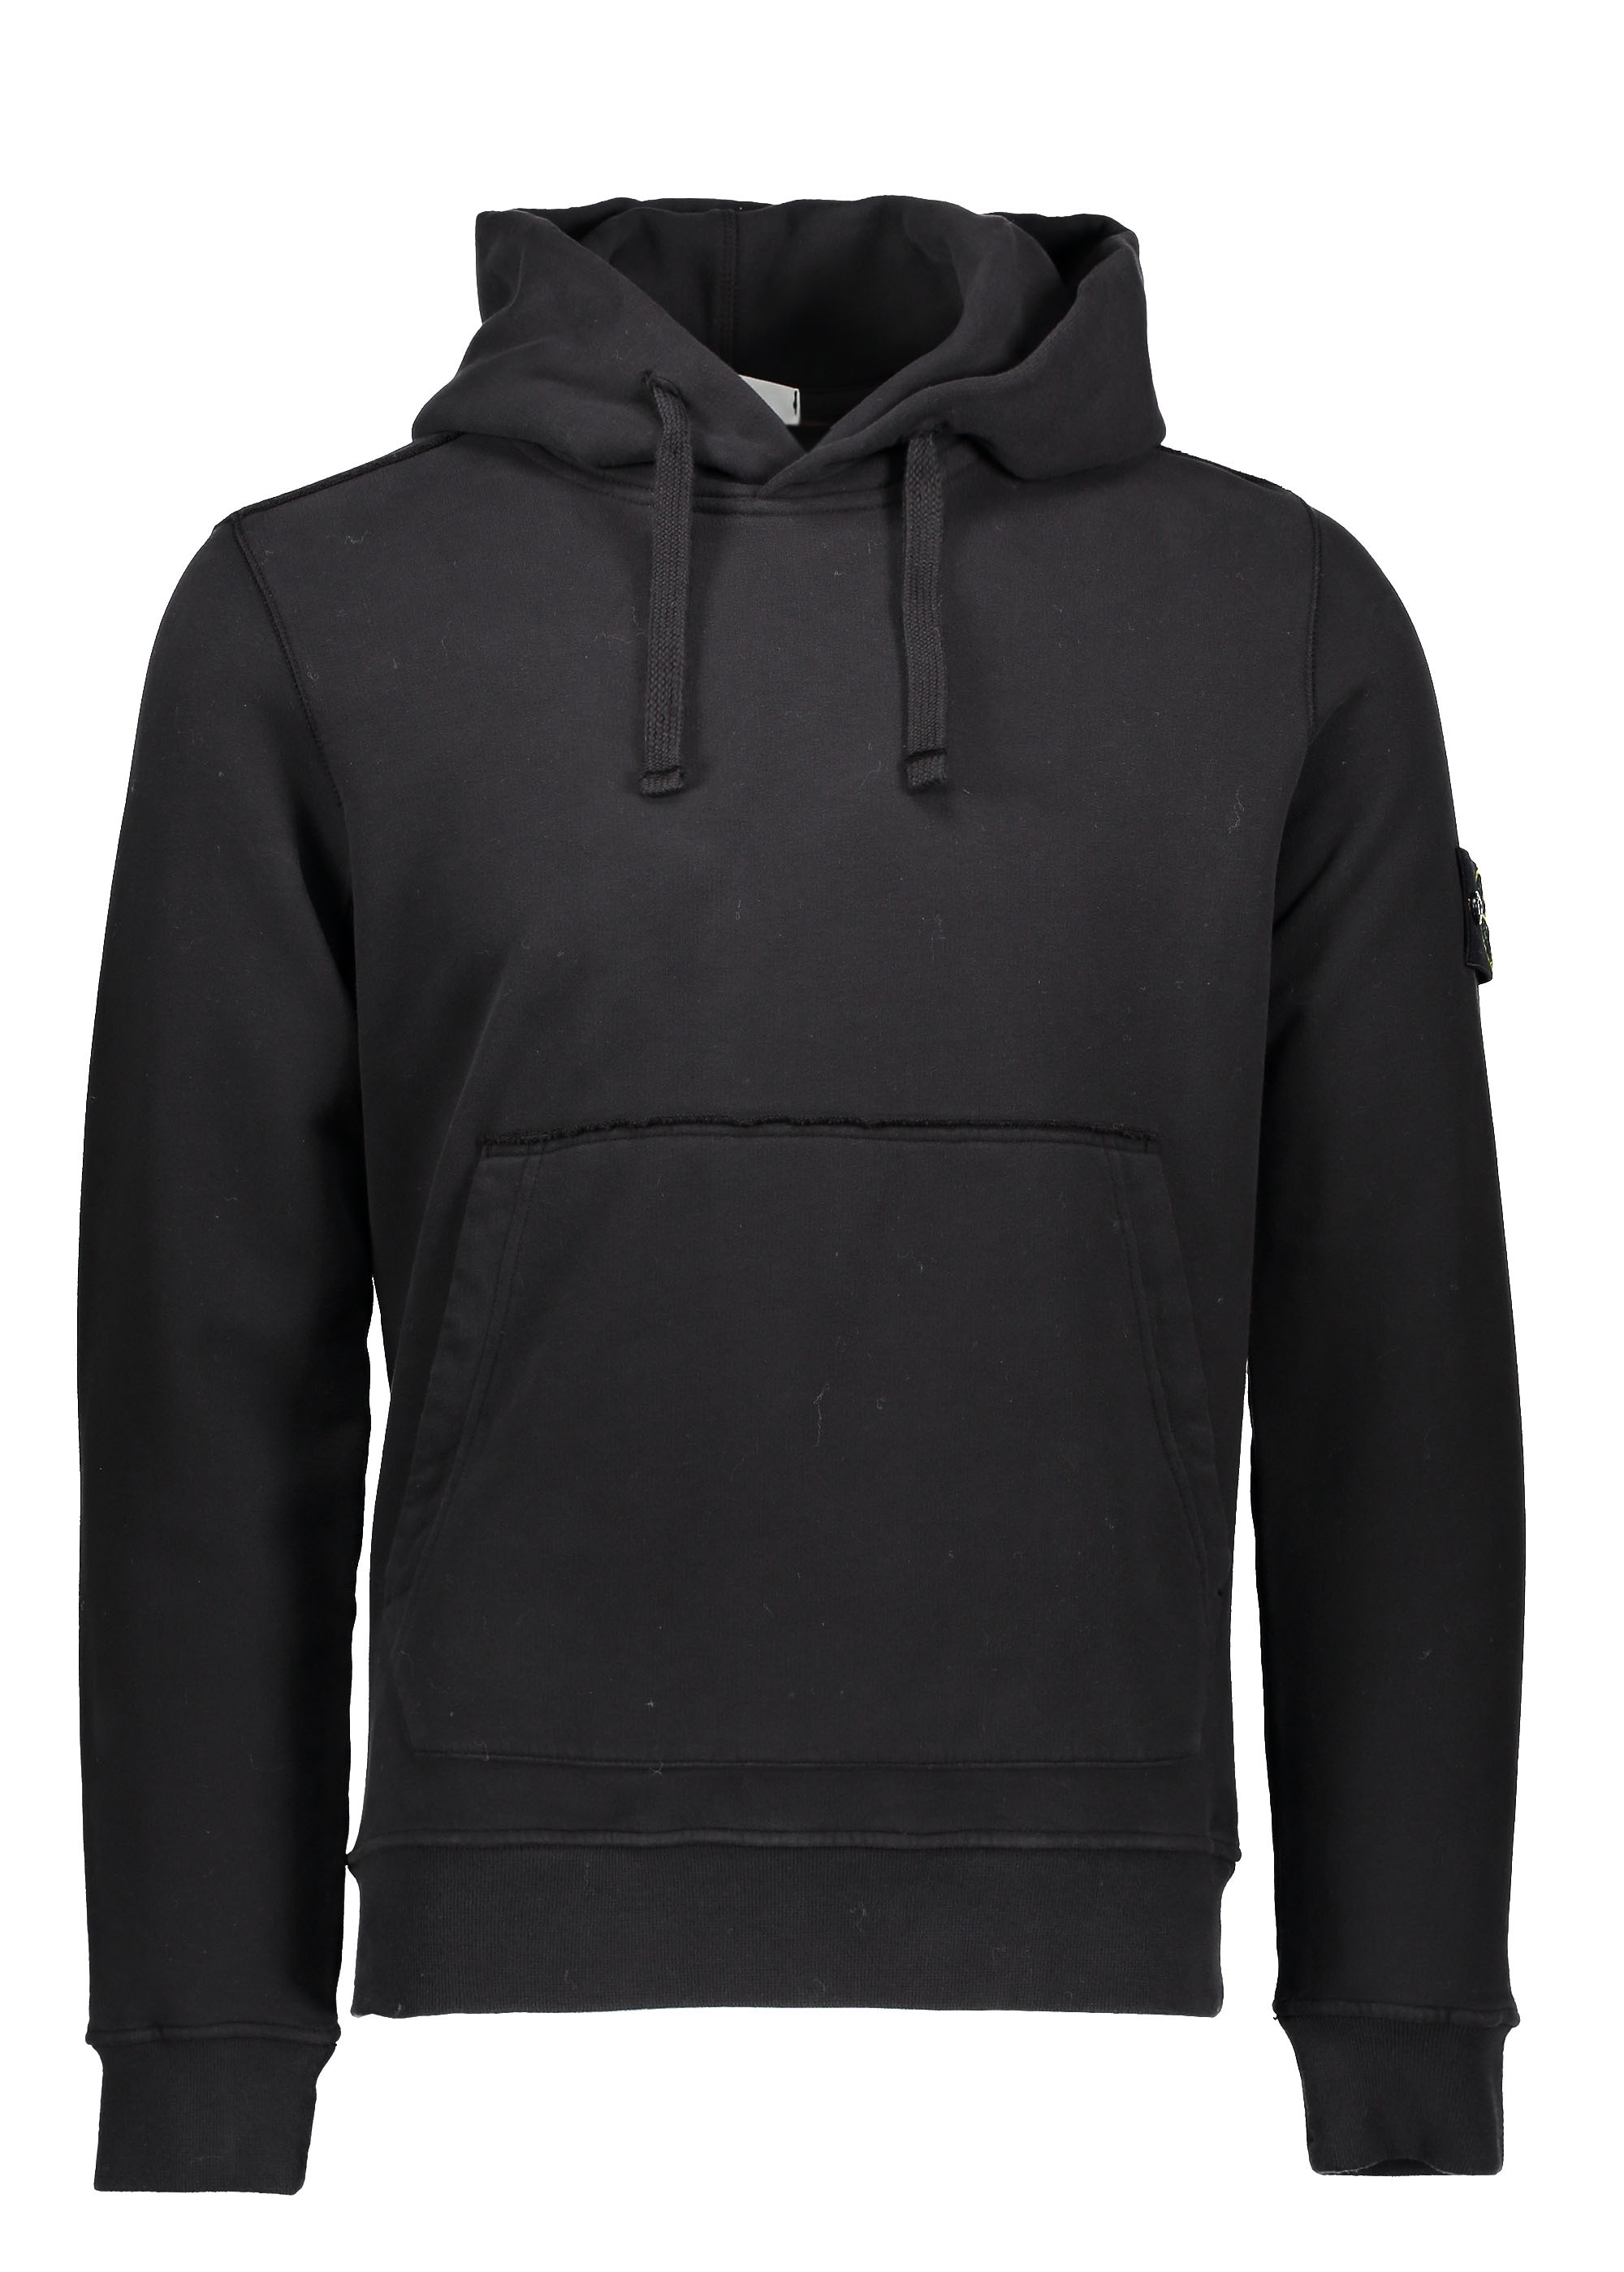 388ea6df913 Stone Island Hooded Sweater - Black - Hoodies from Triads UK